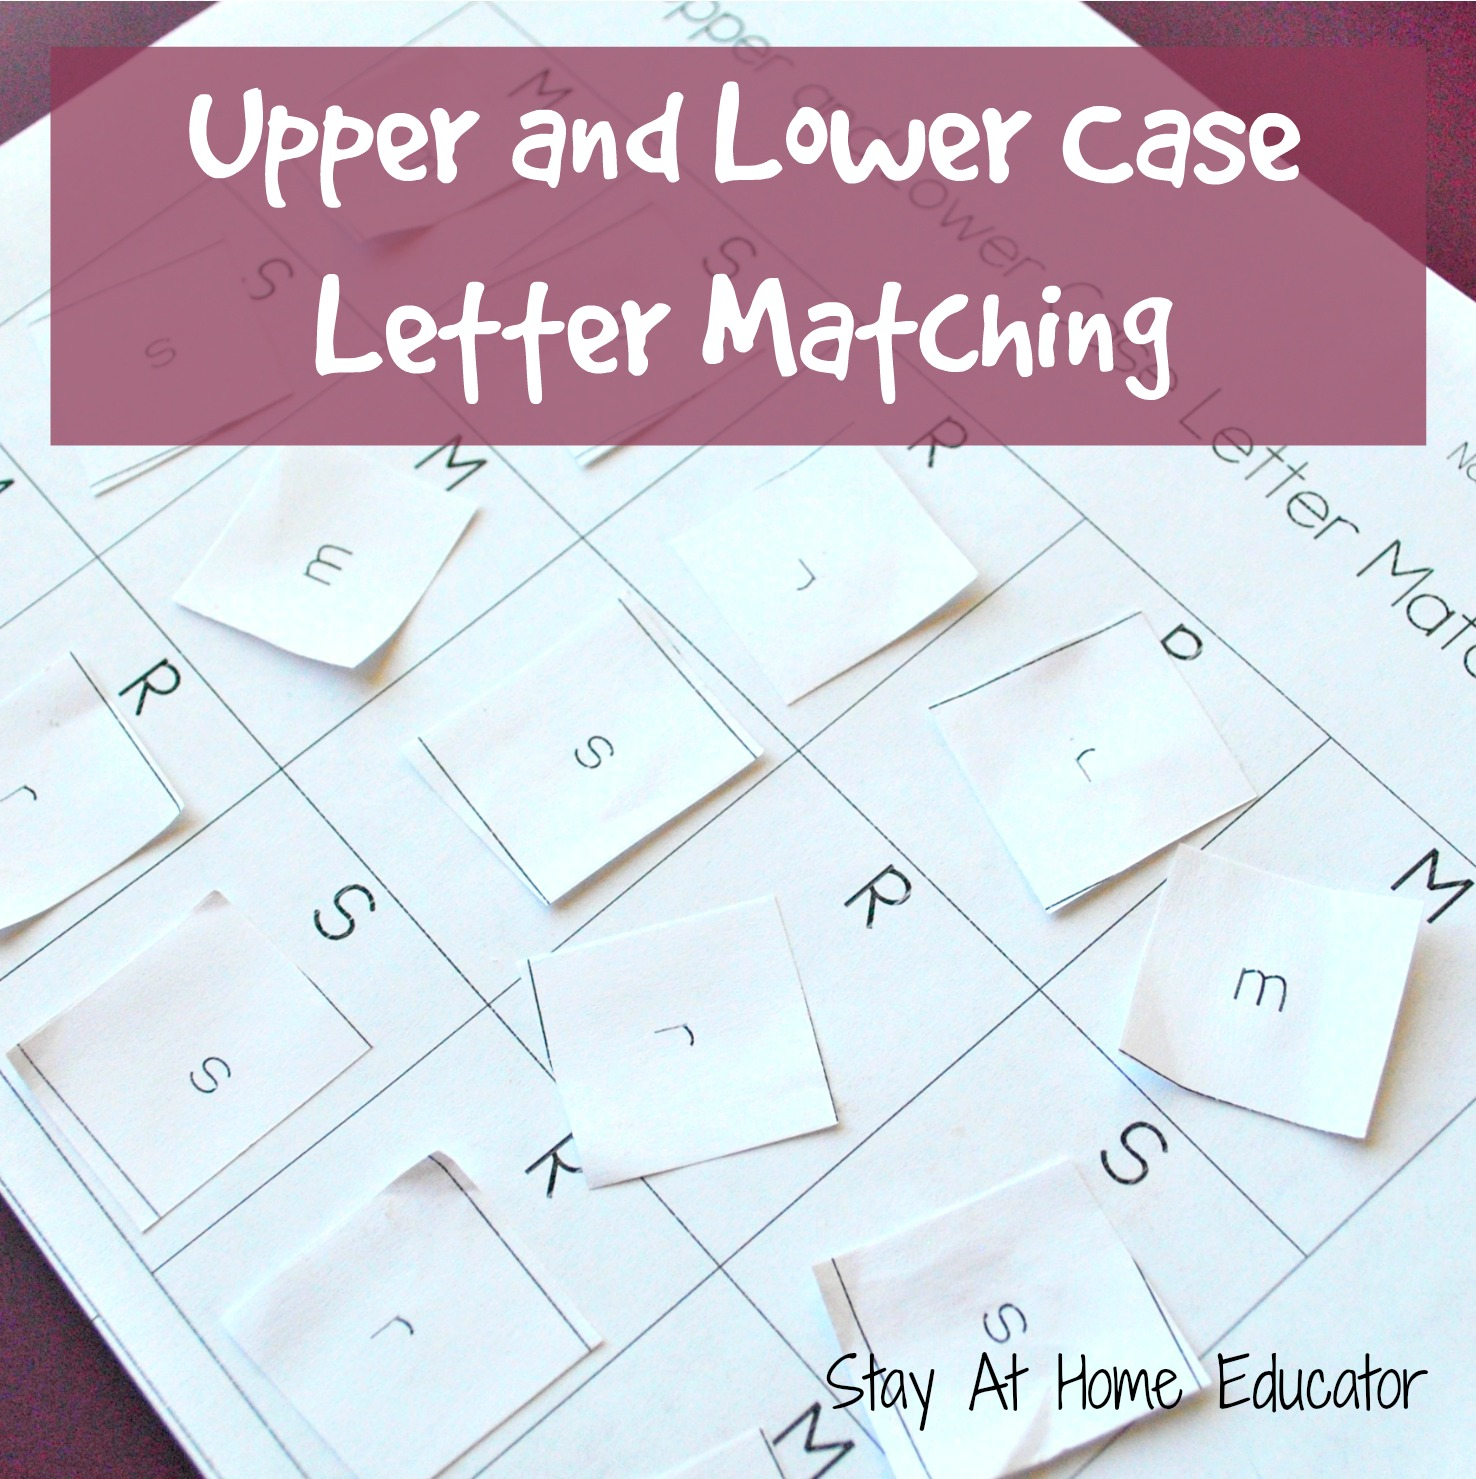 Upper And Lower Case Letter Matching Activity For Letter Recognition Review Activity In